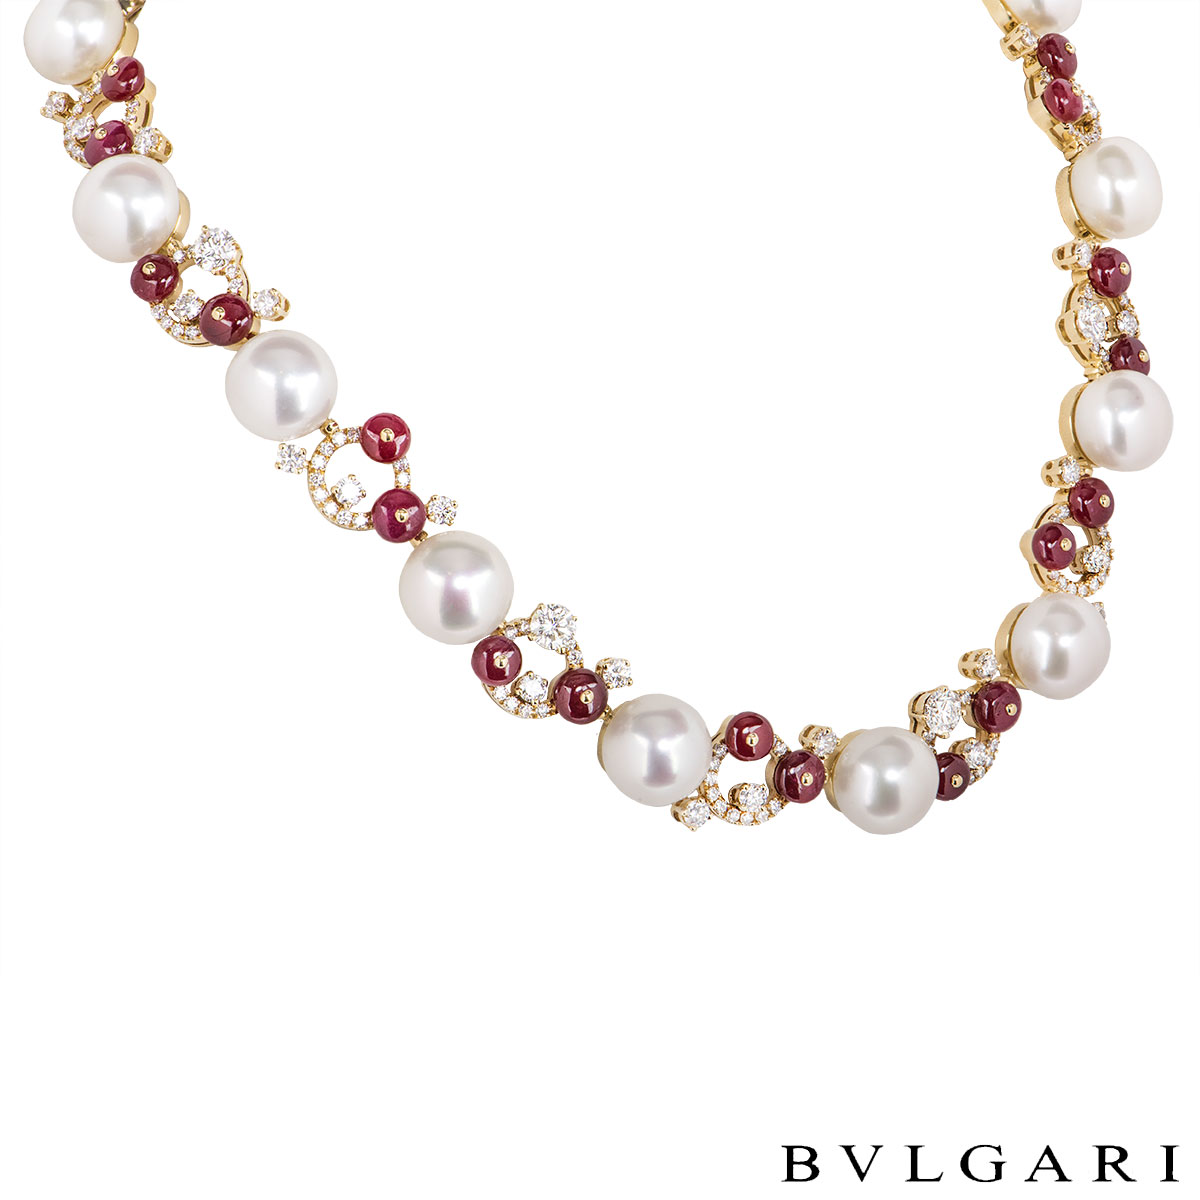 Bvlgari Yellow Gold Diamond And Multi-Gem Necklace